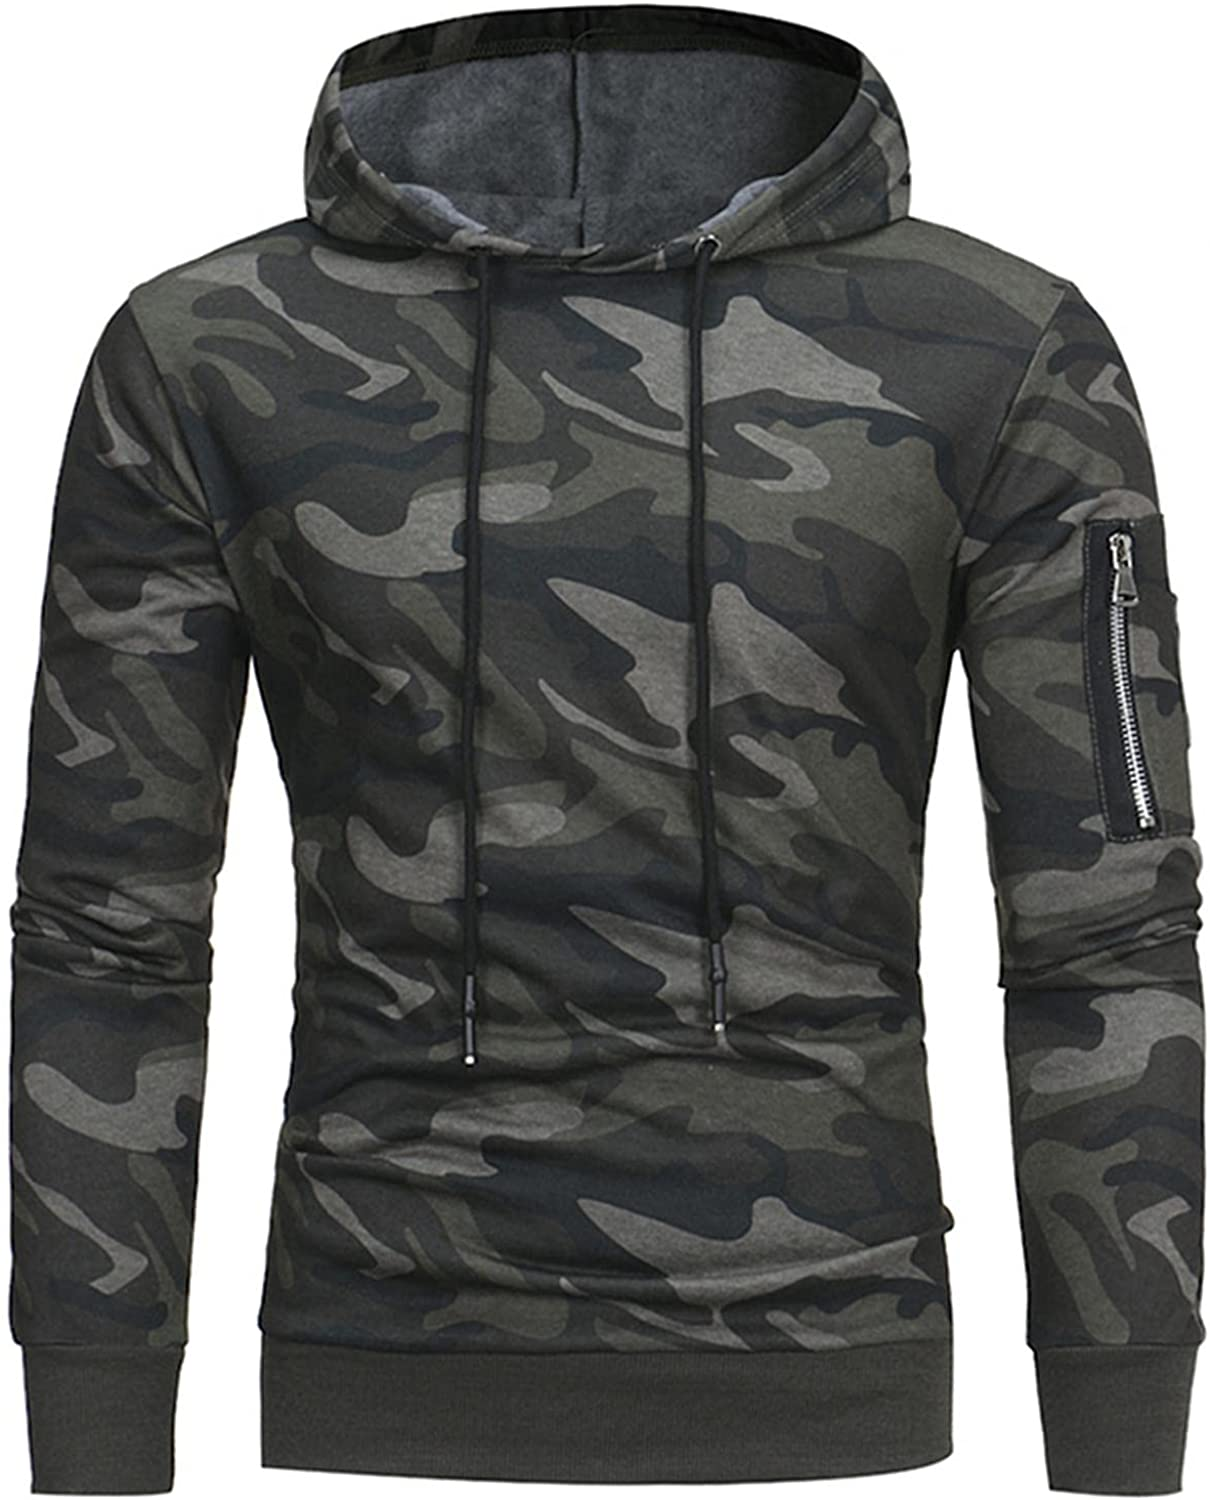 Huangse Mens Gym Workout Camouflage Hoodies Athletic Bodybuilding Muscle Lightweight Camo Hooded Sweatshirts